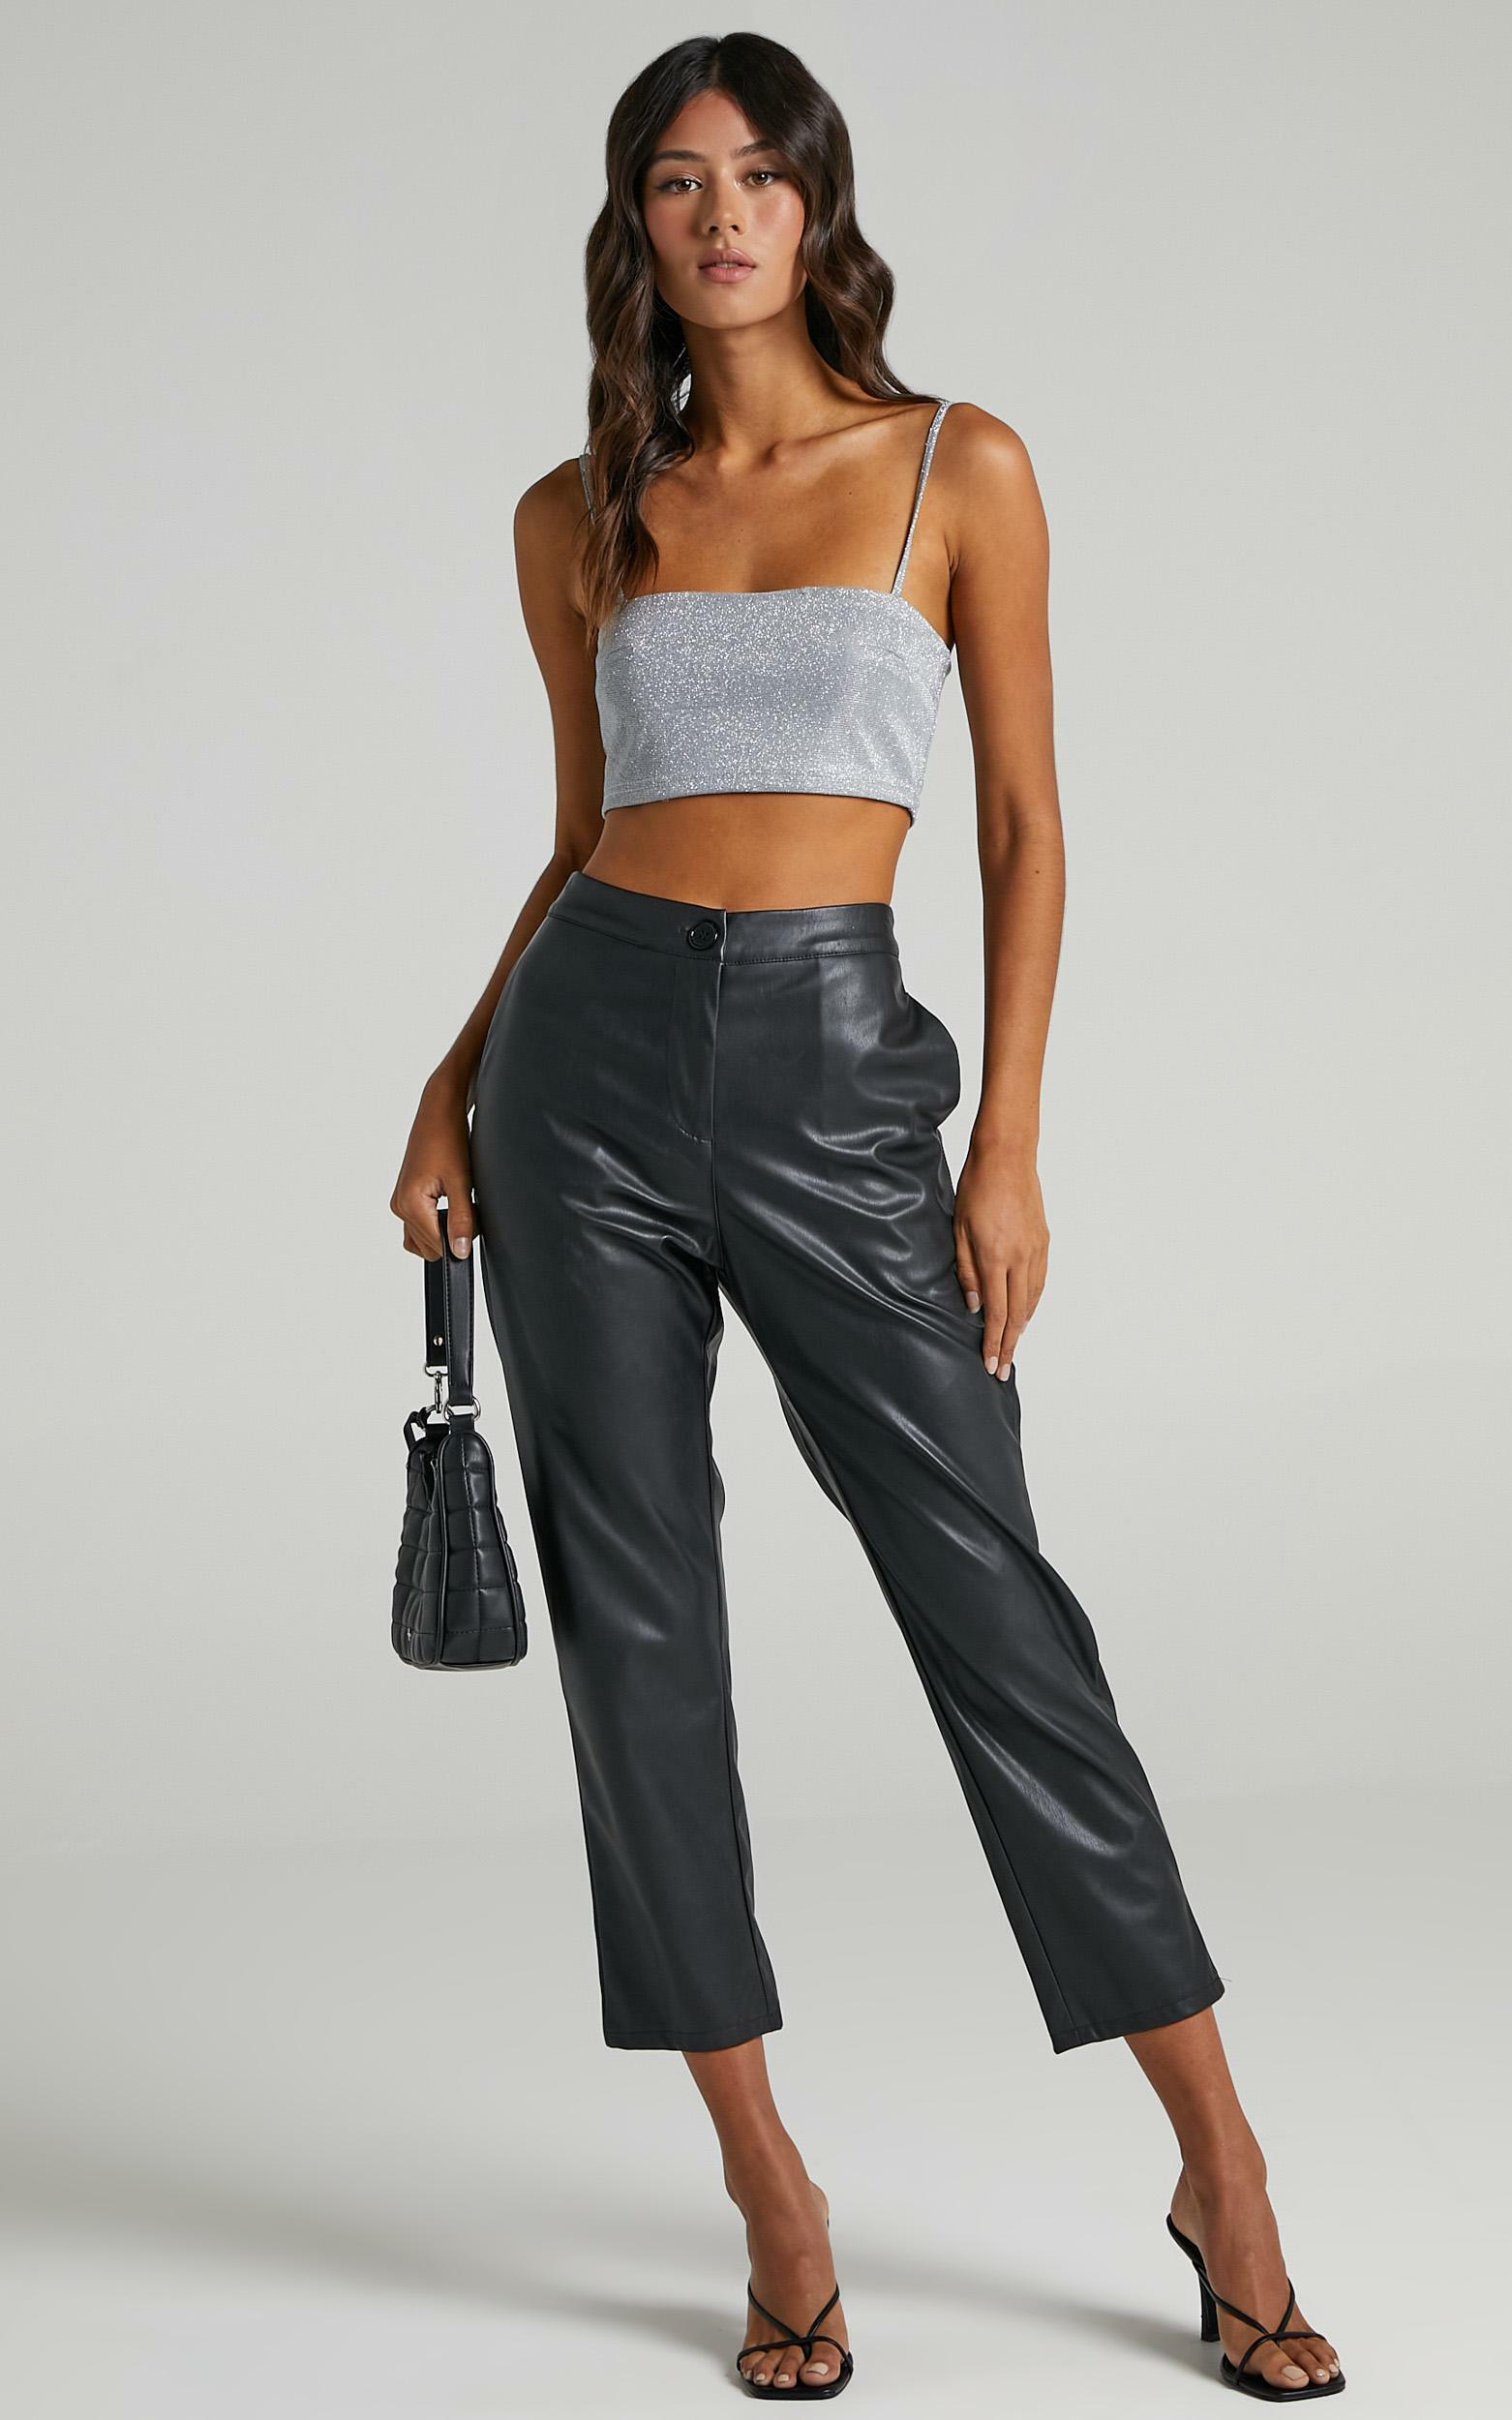 Isolde Top in Silver - 06, SLV1, hi-res image number null